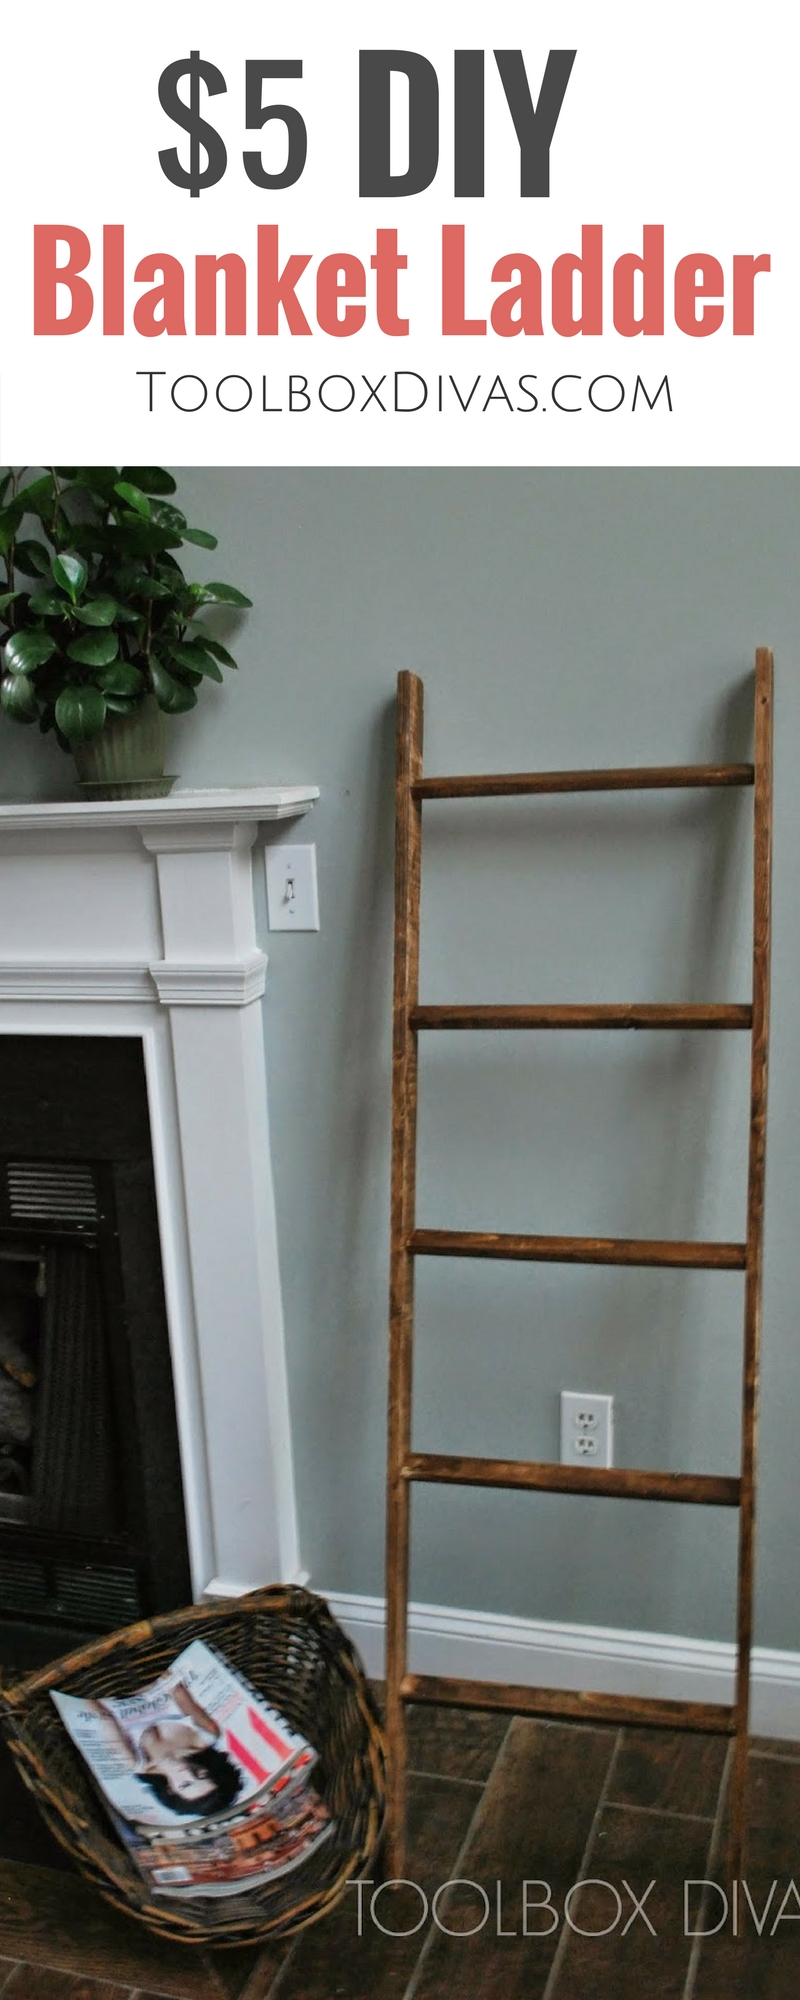 Cheap and inexpensive $5 Pottery Barn Knockoff. Learn how to tutorial/DIY on making a throw blanket ladder.  Perfect for a baby's nursery. free plans woodworking  #Toolboxdivas @toolboxdivas #blankets #ladder #potterybarn #cozy #winter #blanketthrow